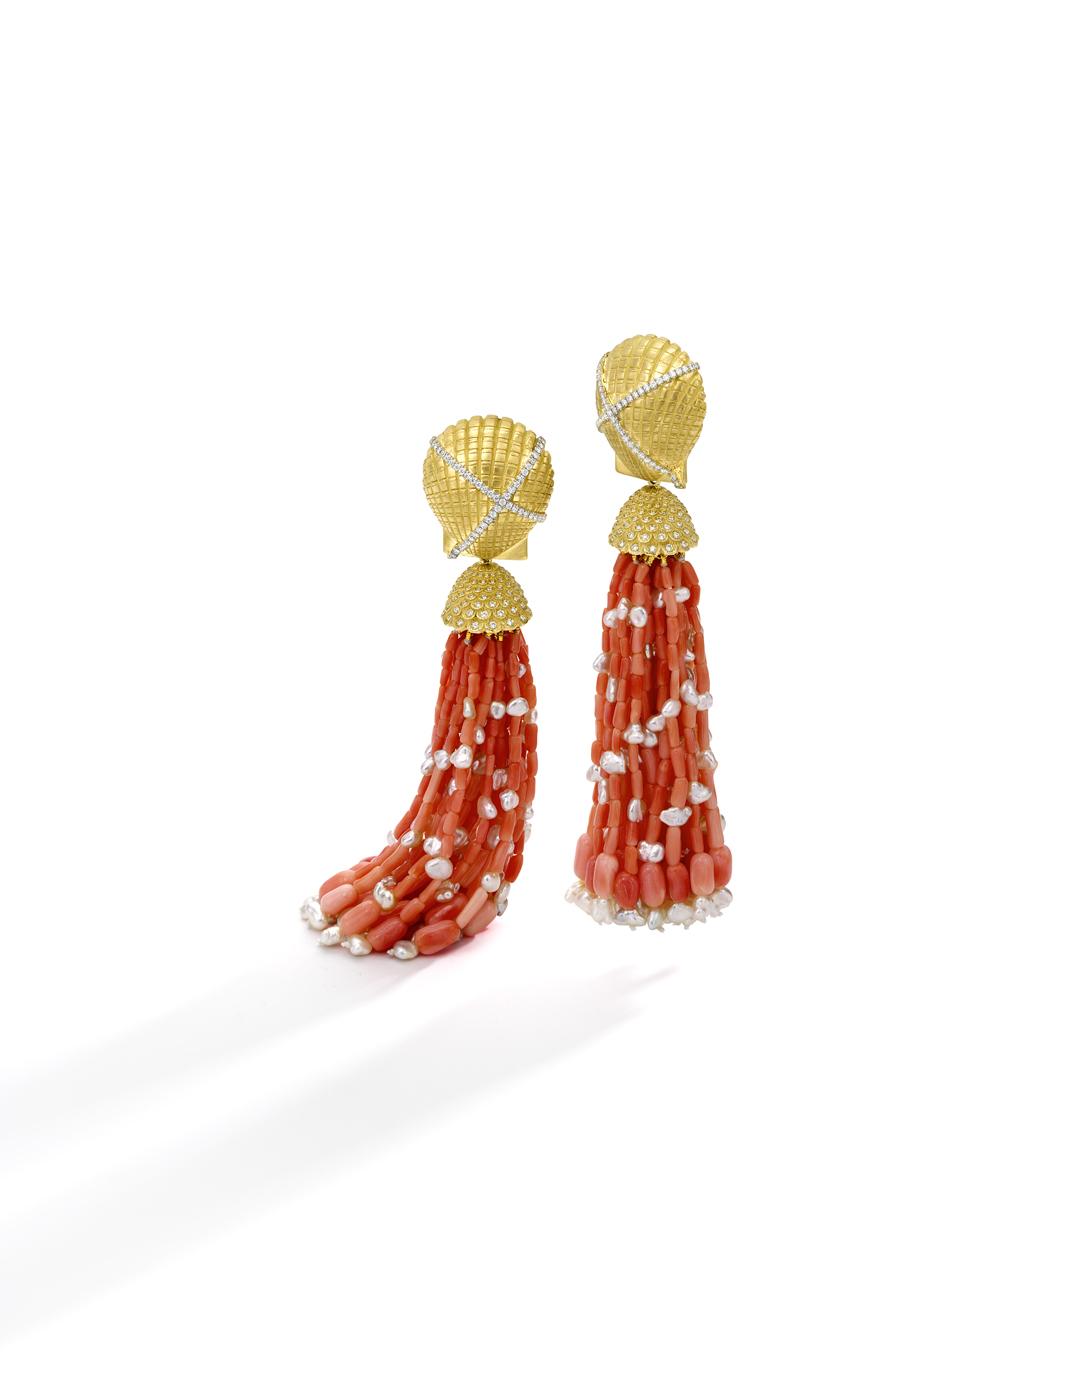 mish_products_earrings_Cabana-Scallop-Tassel ER-1